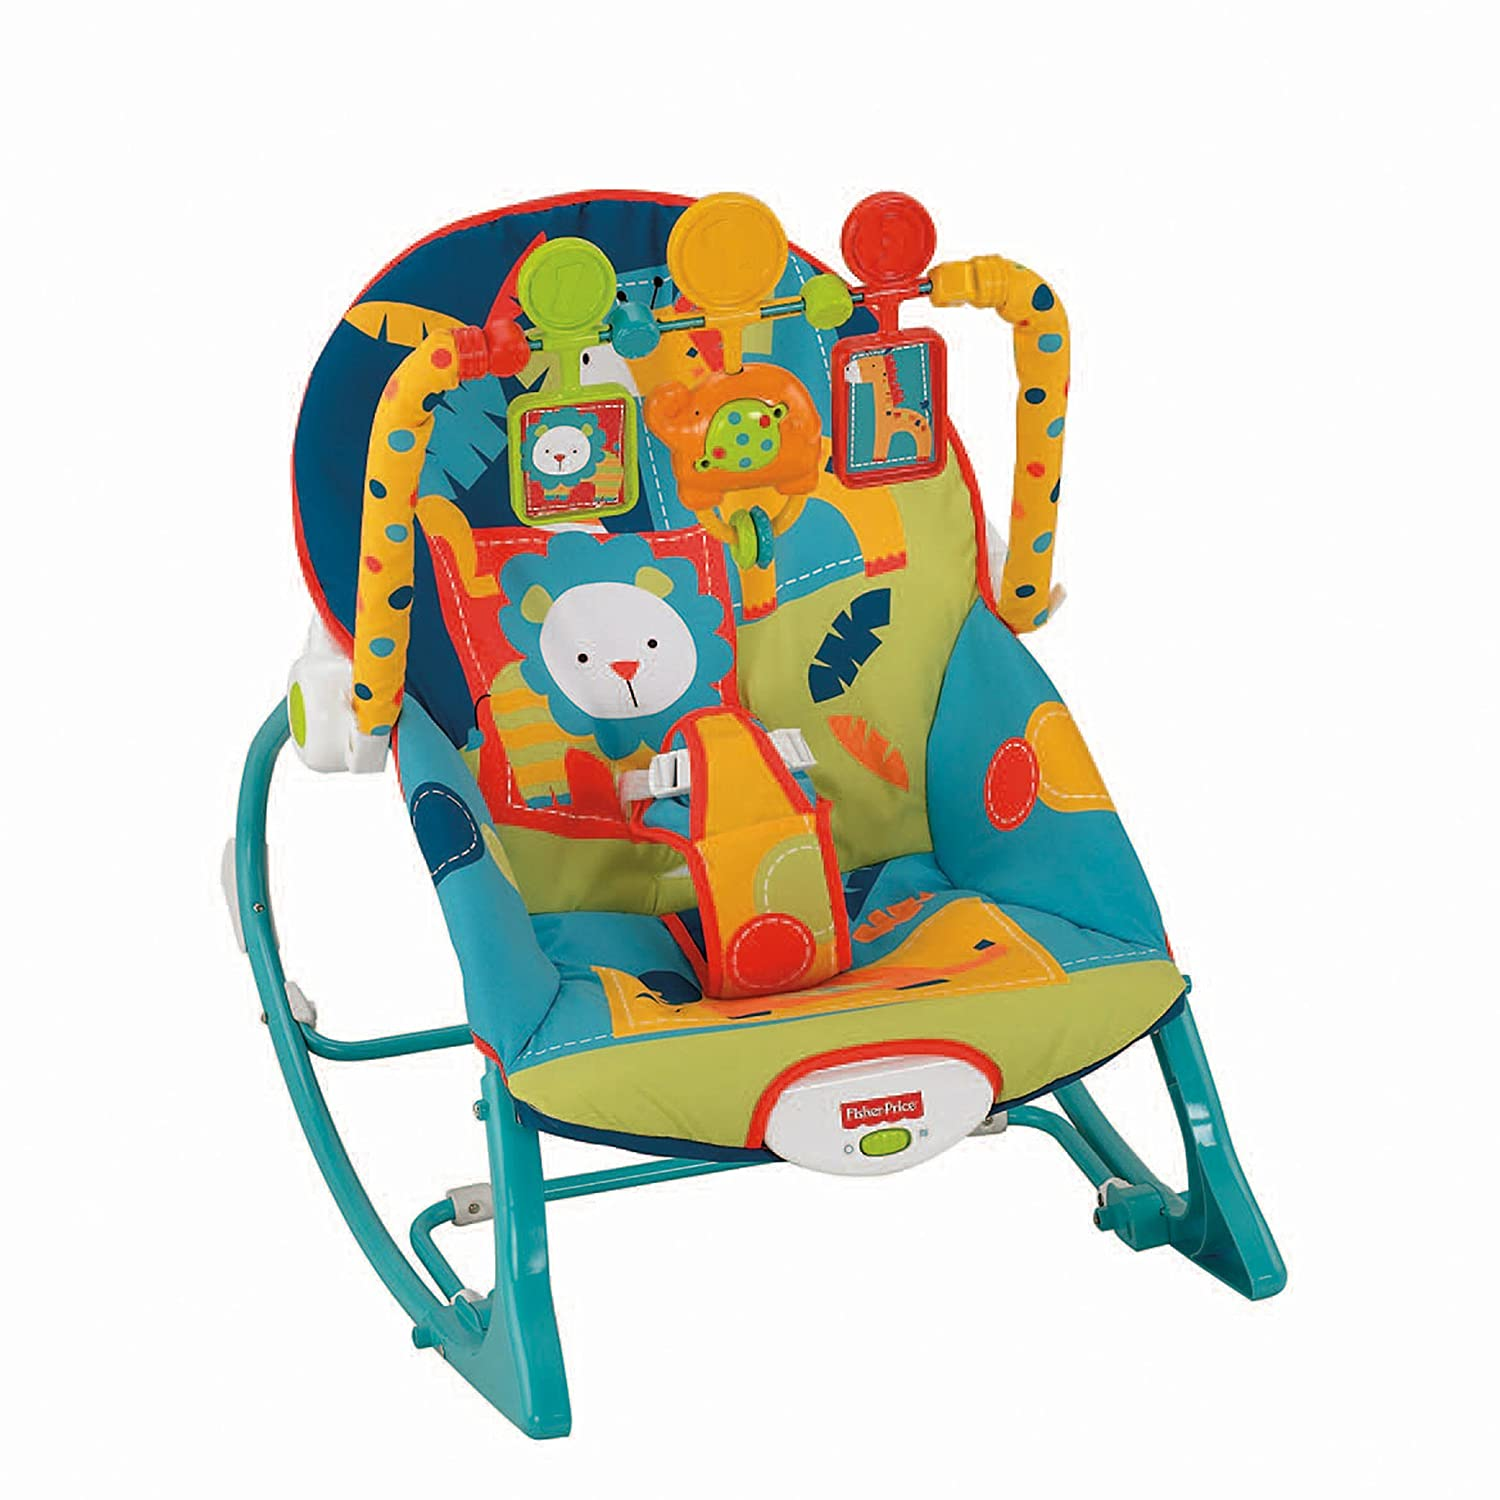 Pleasing Fisher Price Infant To Toddler Rocker Dark Safari Machost Co Dining Chair Design Ideas Machostcouk